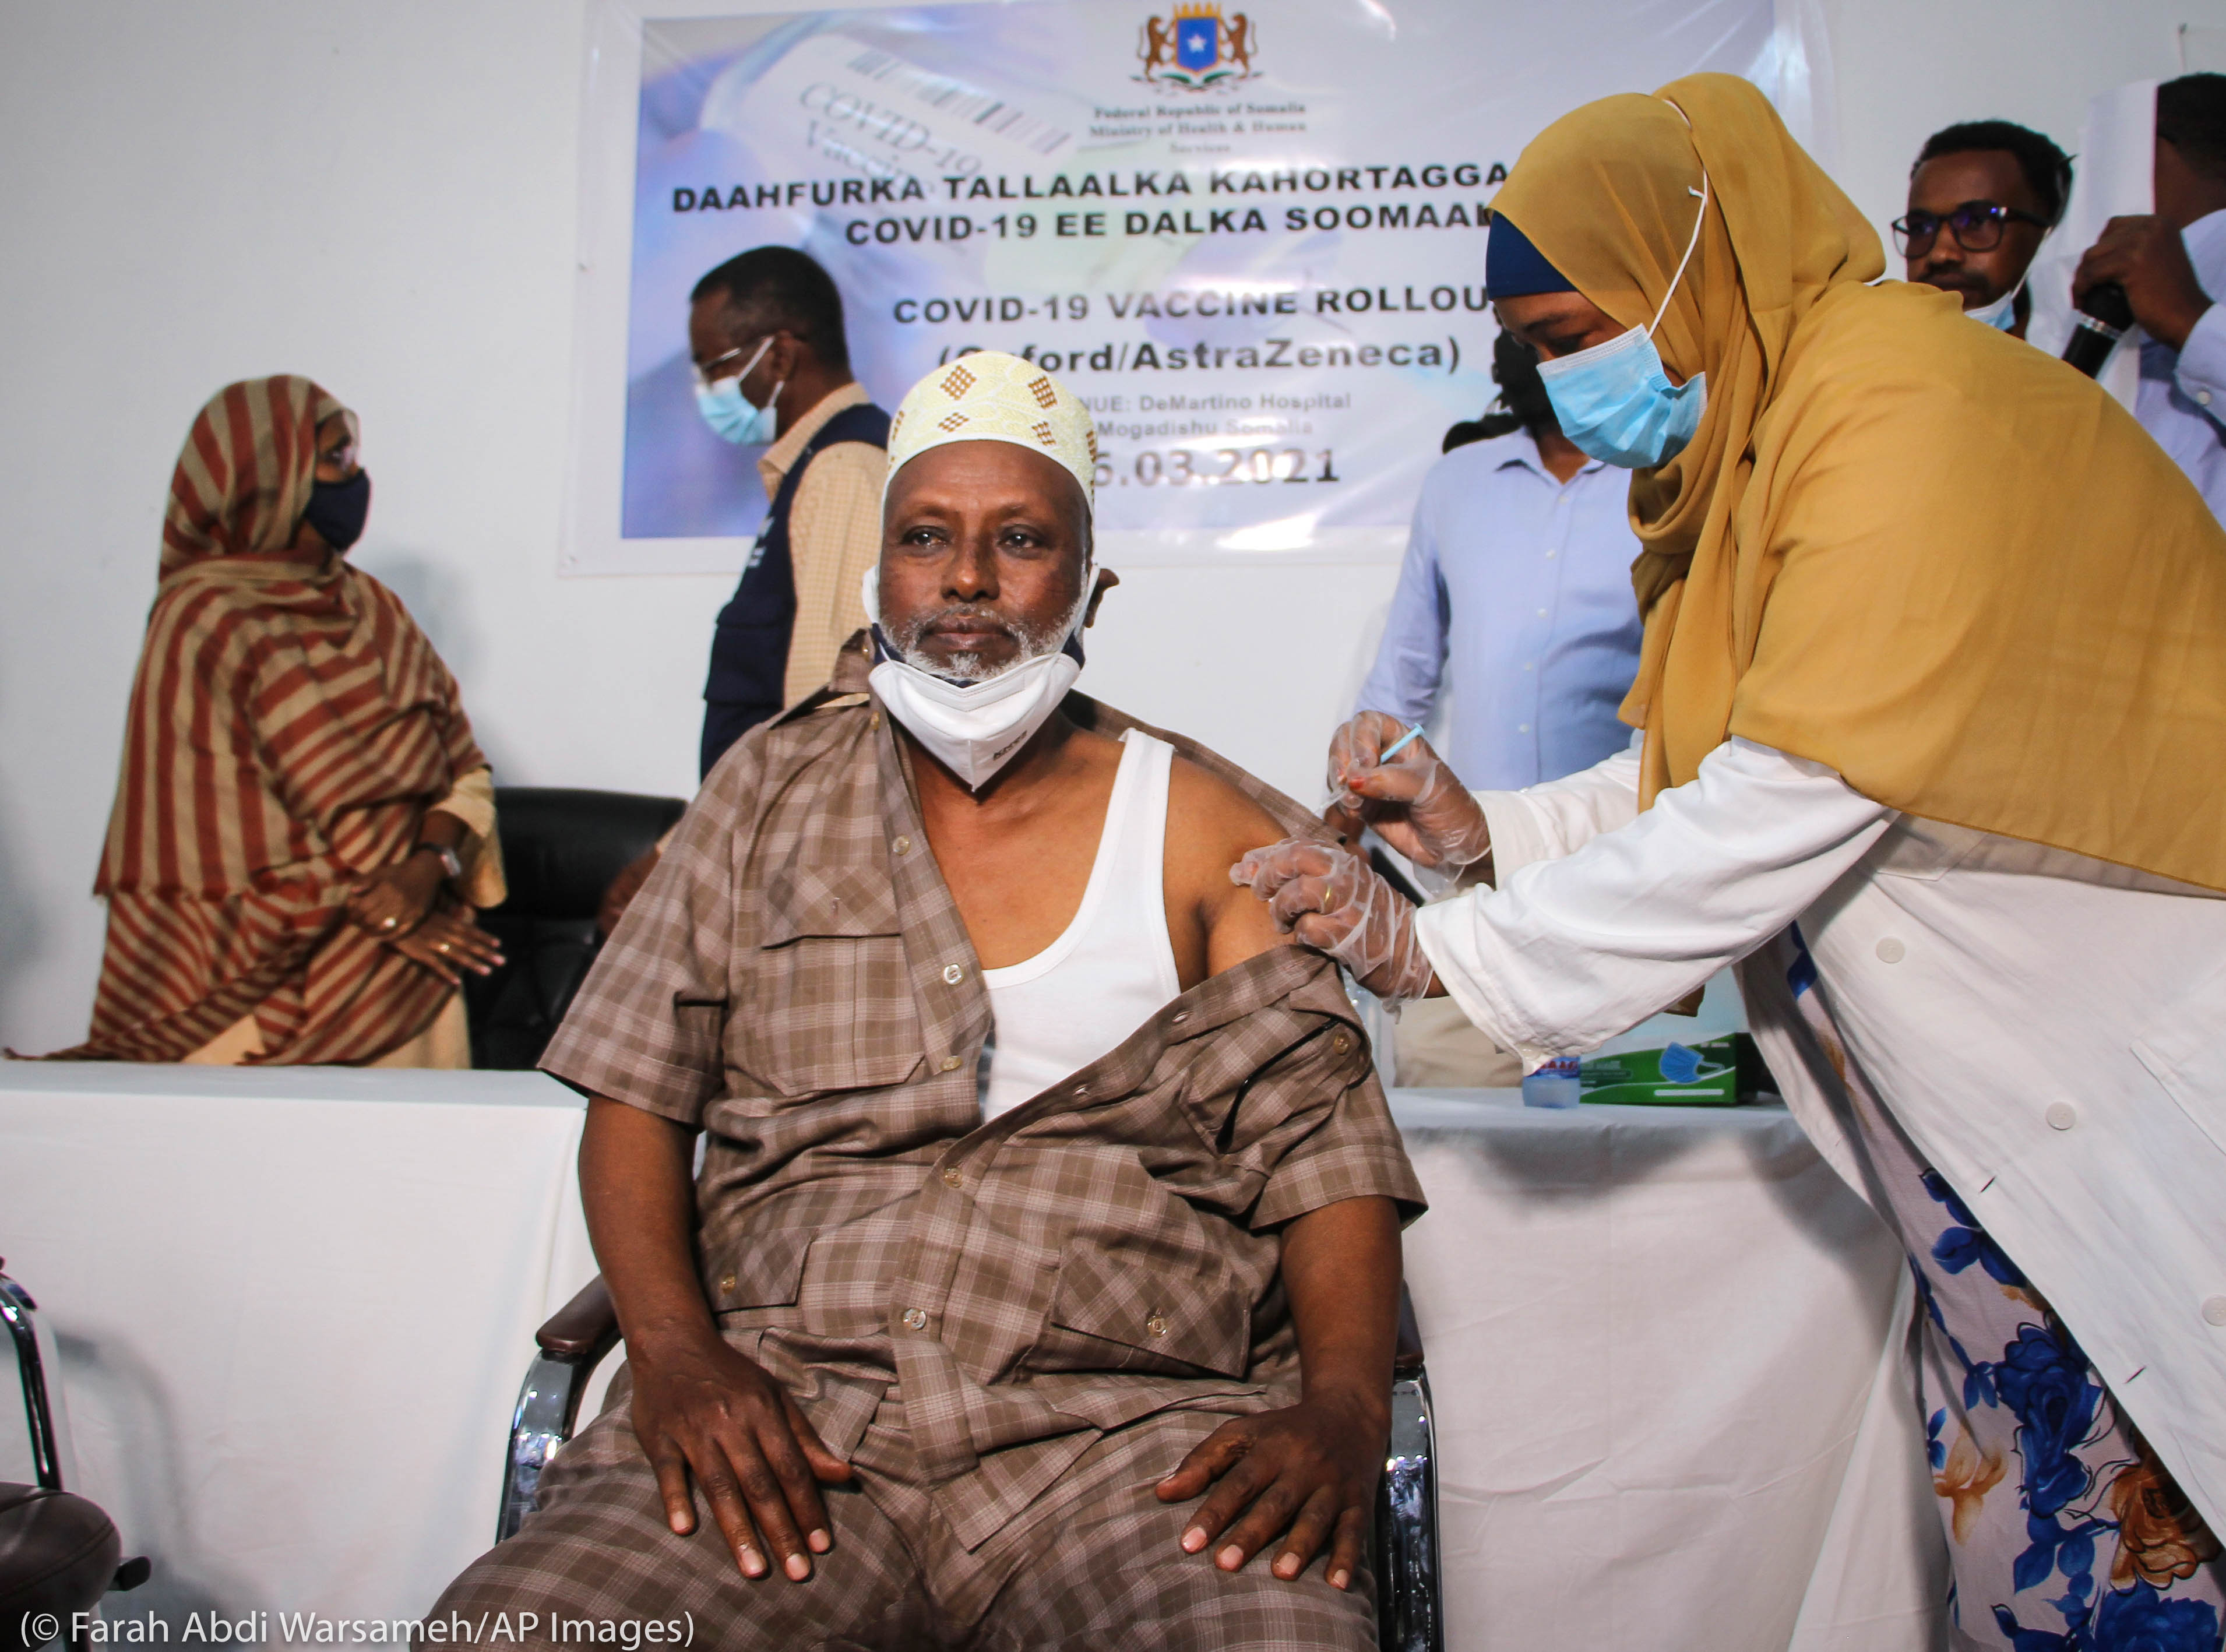 Elderly Somali man receiving vaccination as others stand nearby (© Farah Abdi Warsameh/AP Images)